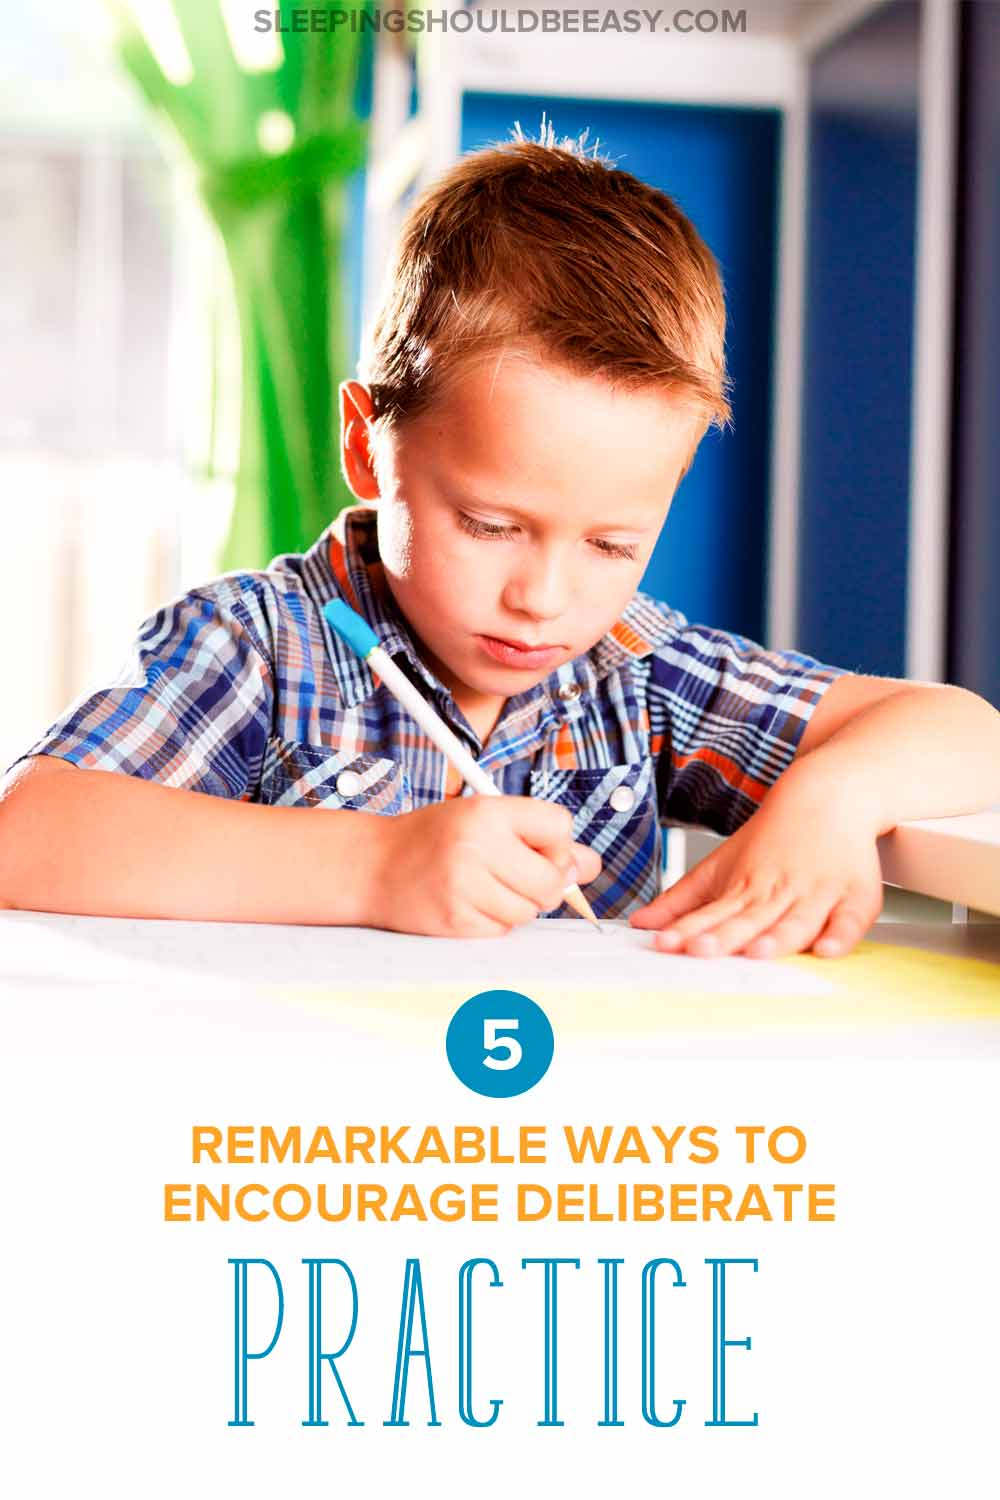 Regular practice isn't enough—kids need to learn how to improve. Here are 5 ways to encourage deliberate practice to keep doing their best and learn.